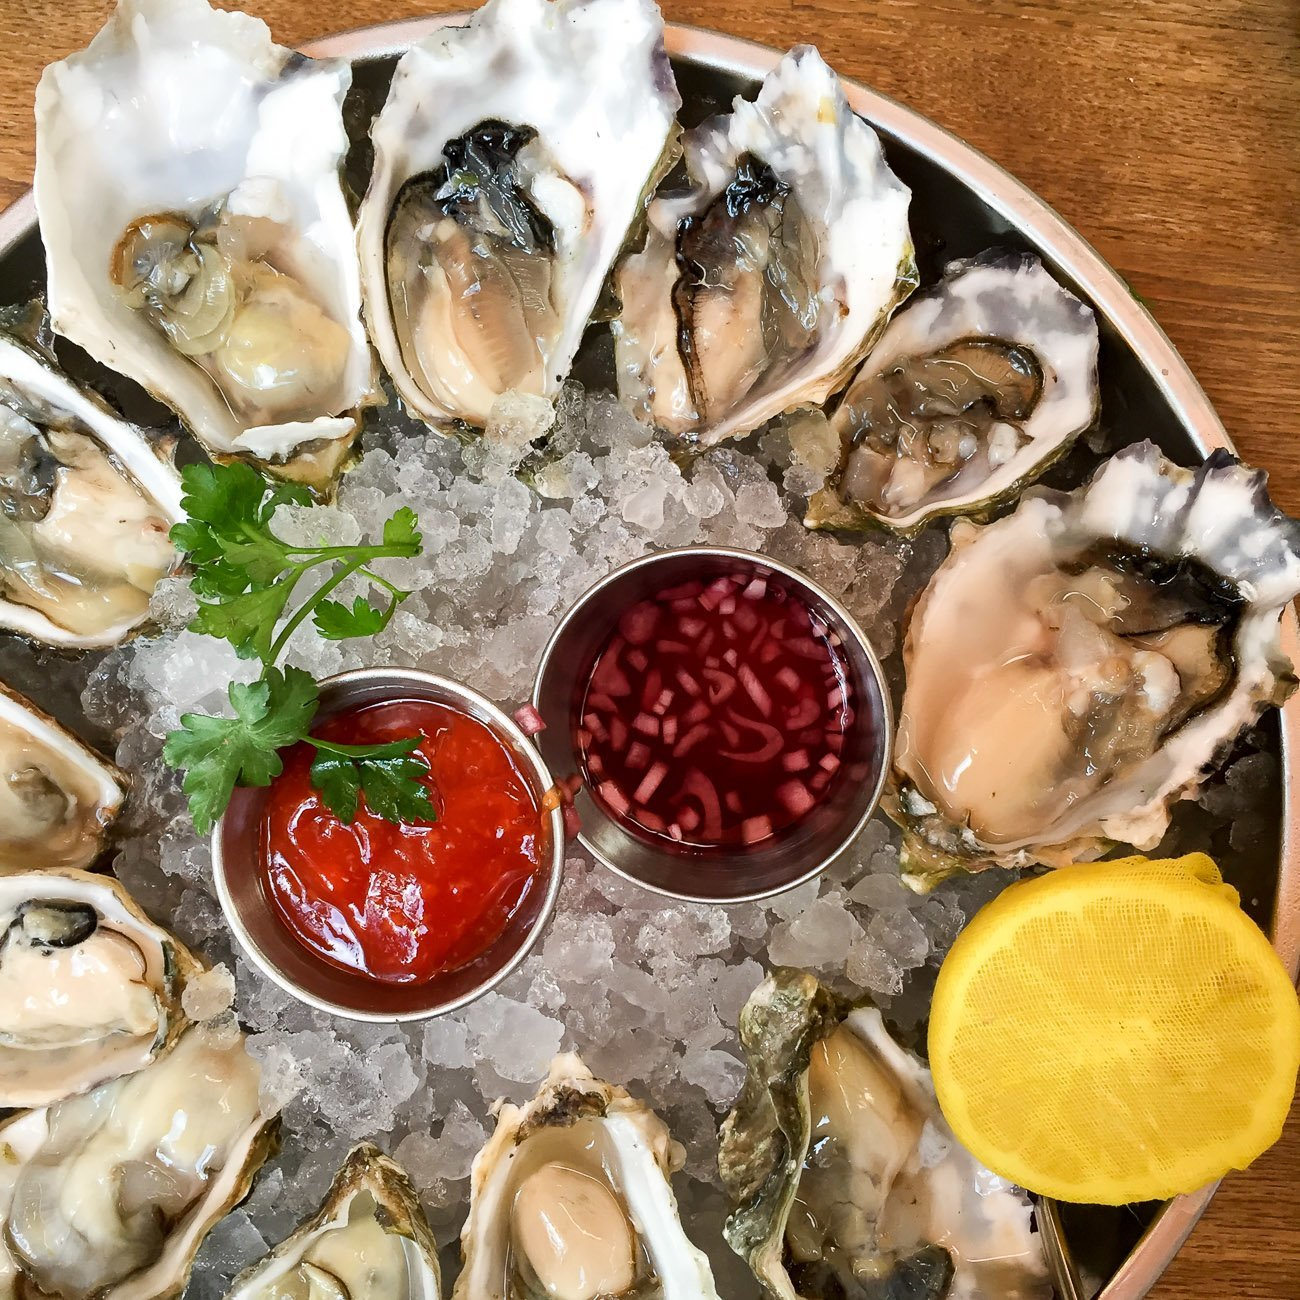 Oyster hour at Herringbone is on weekdays between 4:00 - 6:00 p.m. where oysters are $1 and other bites and some drinks are discounted.